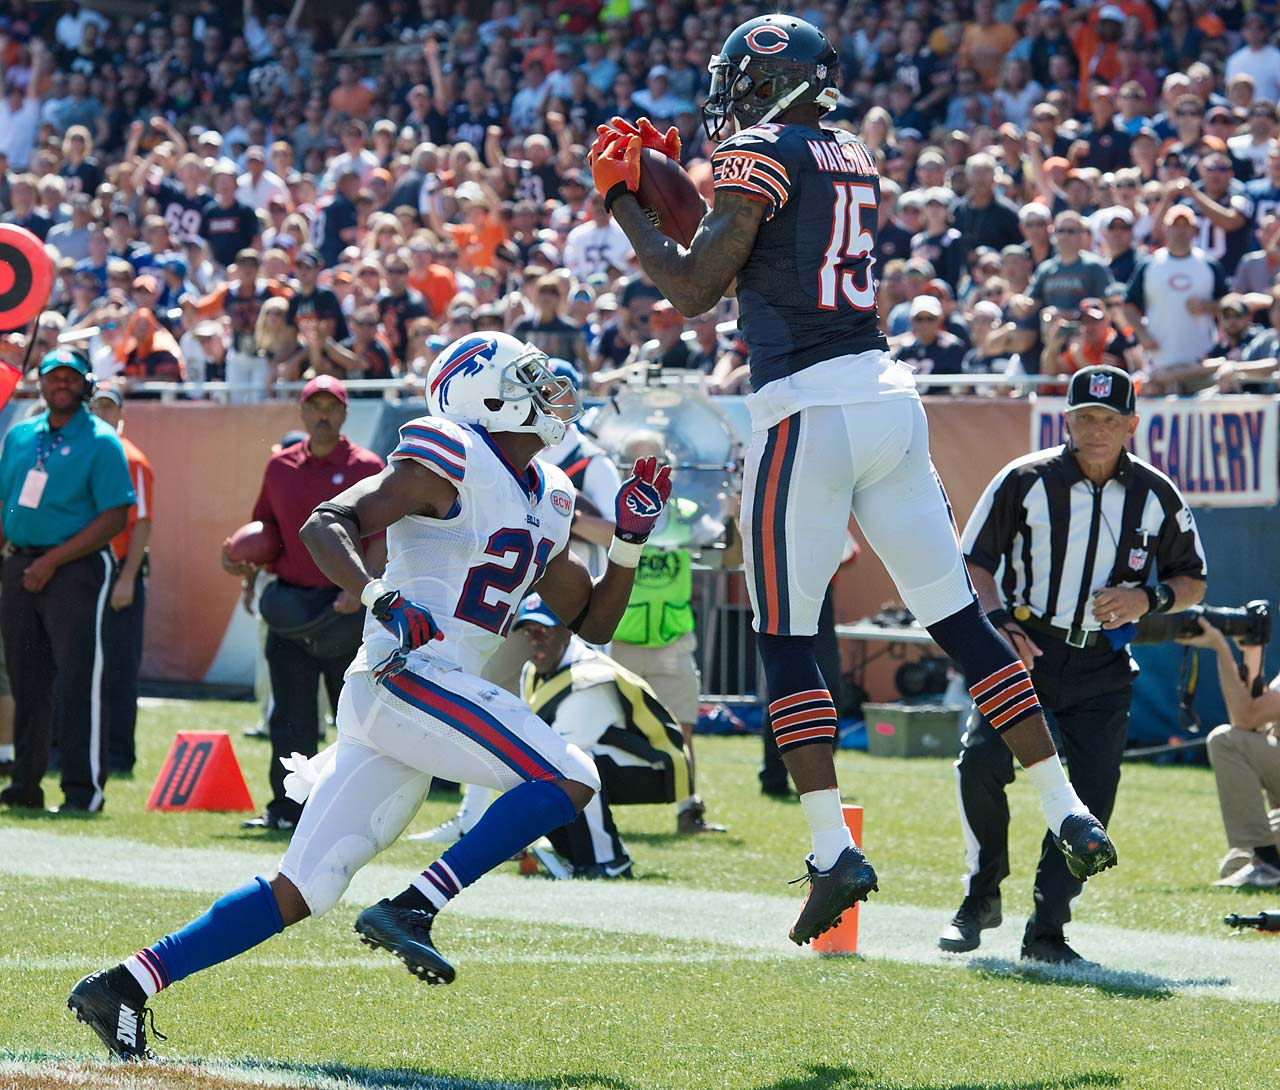 Brandon Marshall hangs on to an 11-yard pass from Jay Cutler for a third-quarter touchdown.